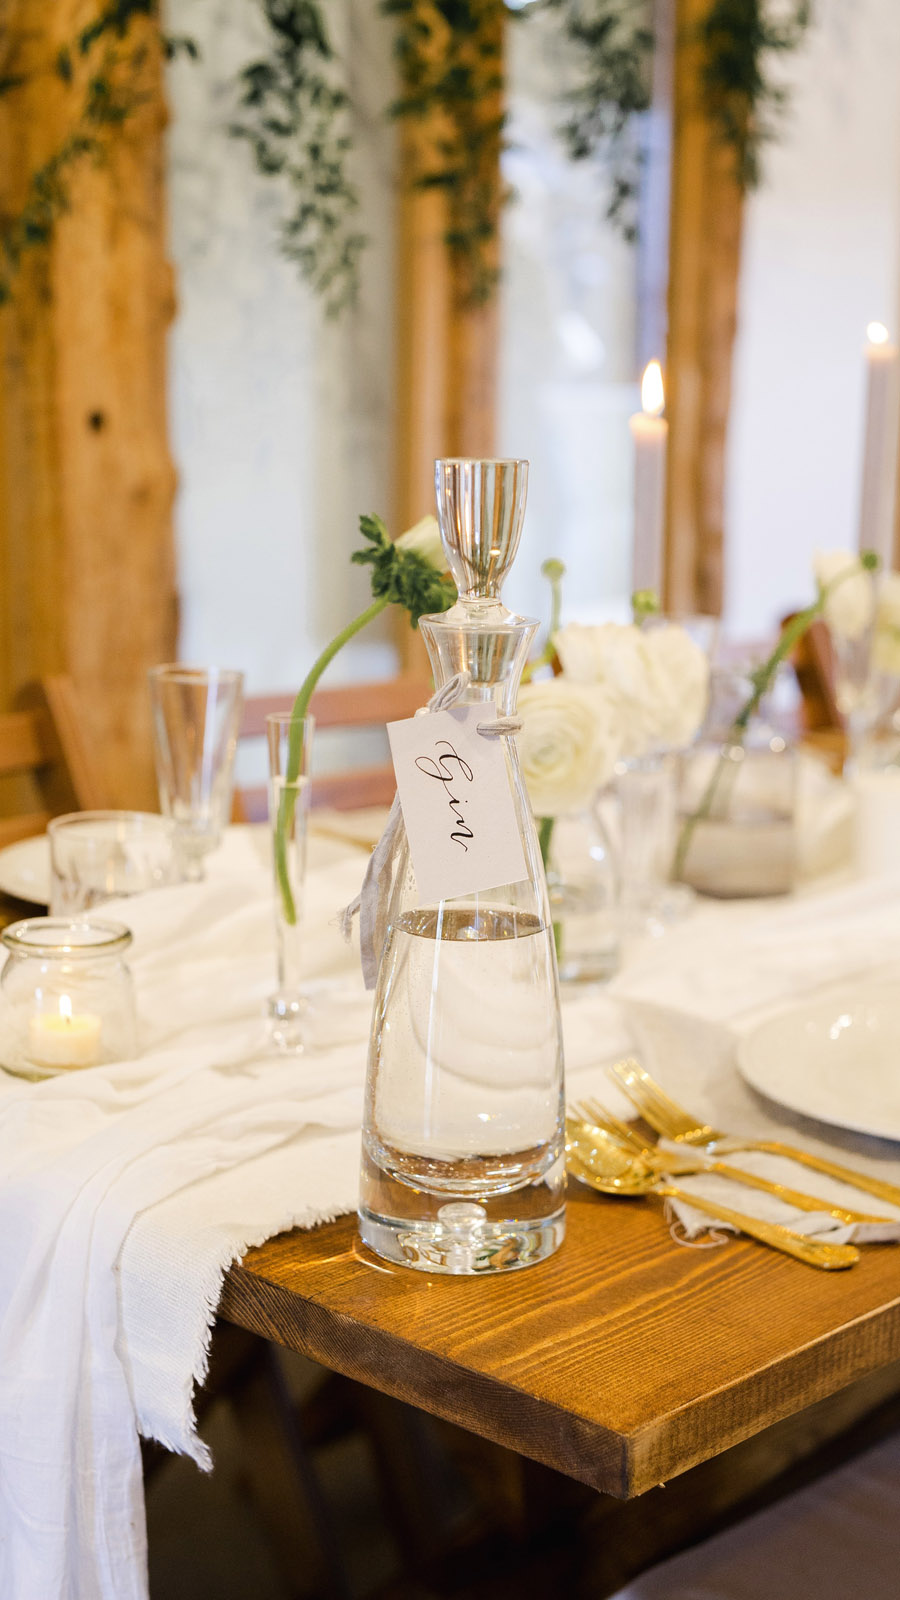 Sustainable, vegan and organic wedding styling ideas from the UK (22)